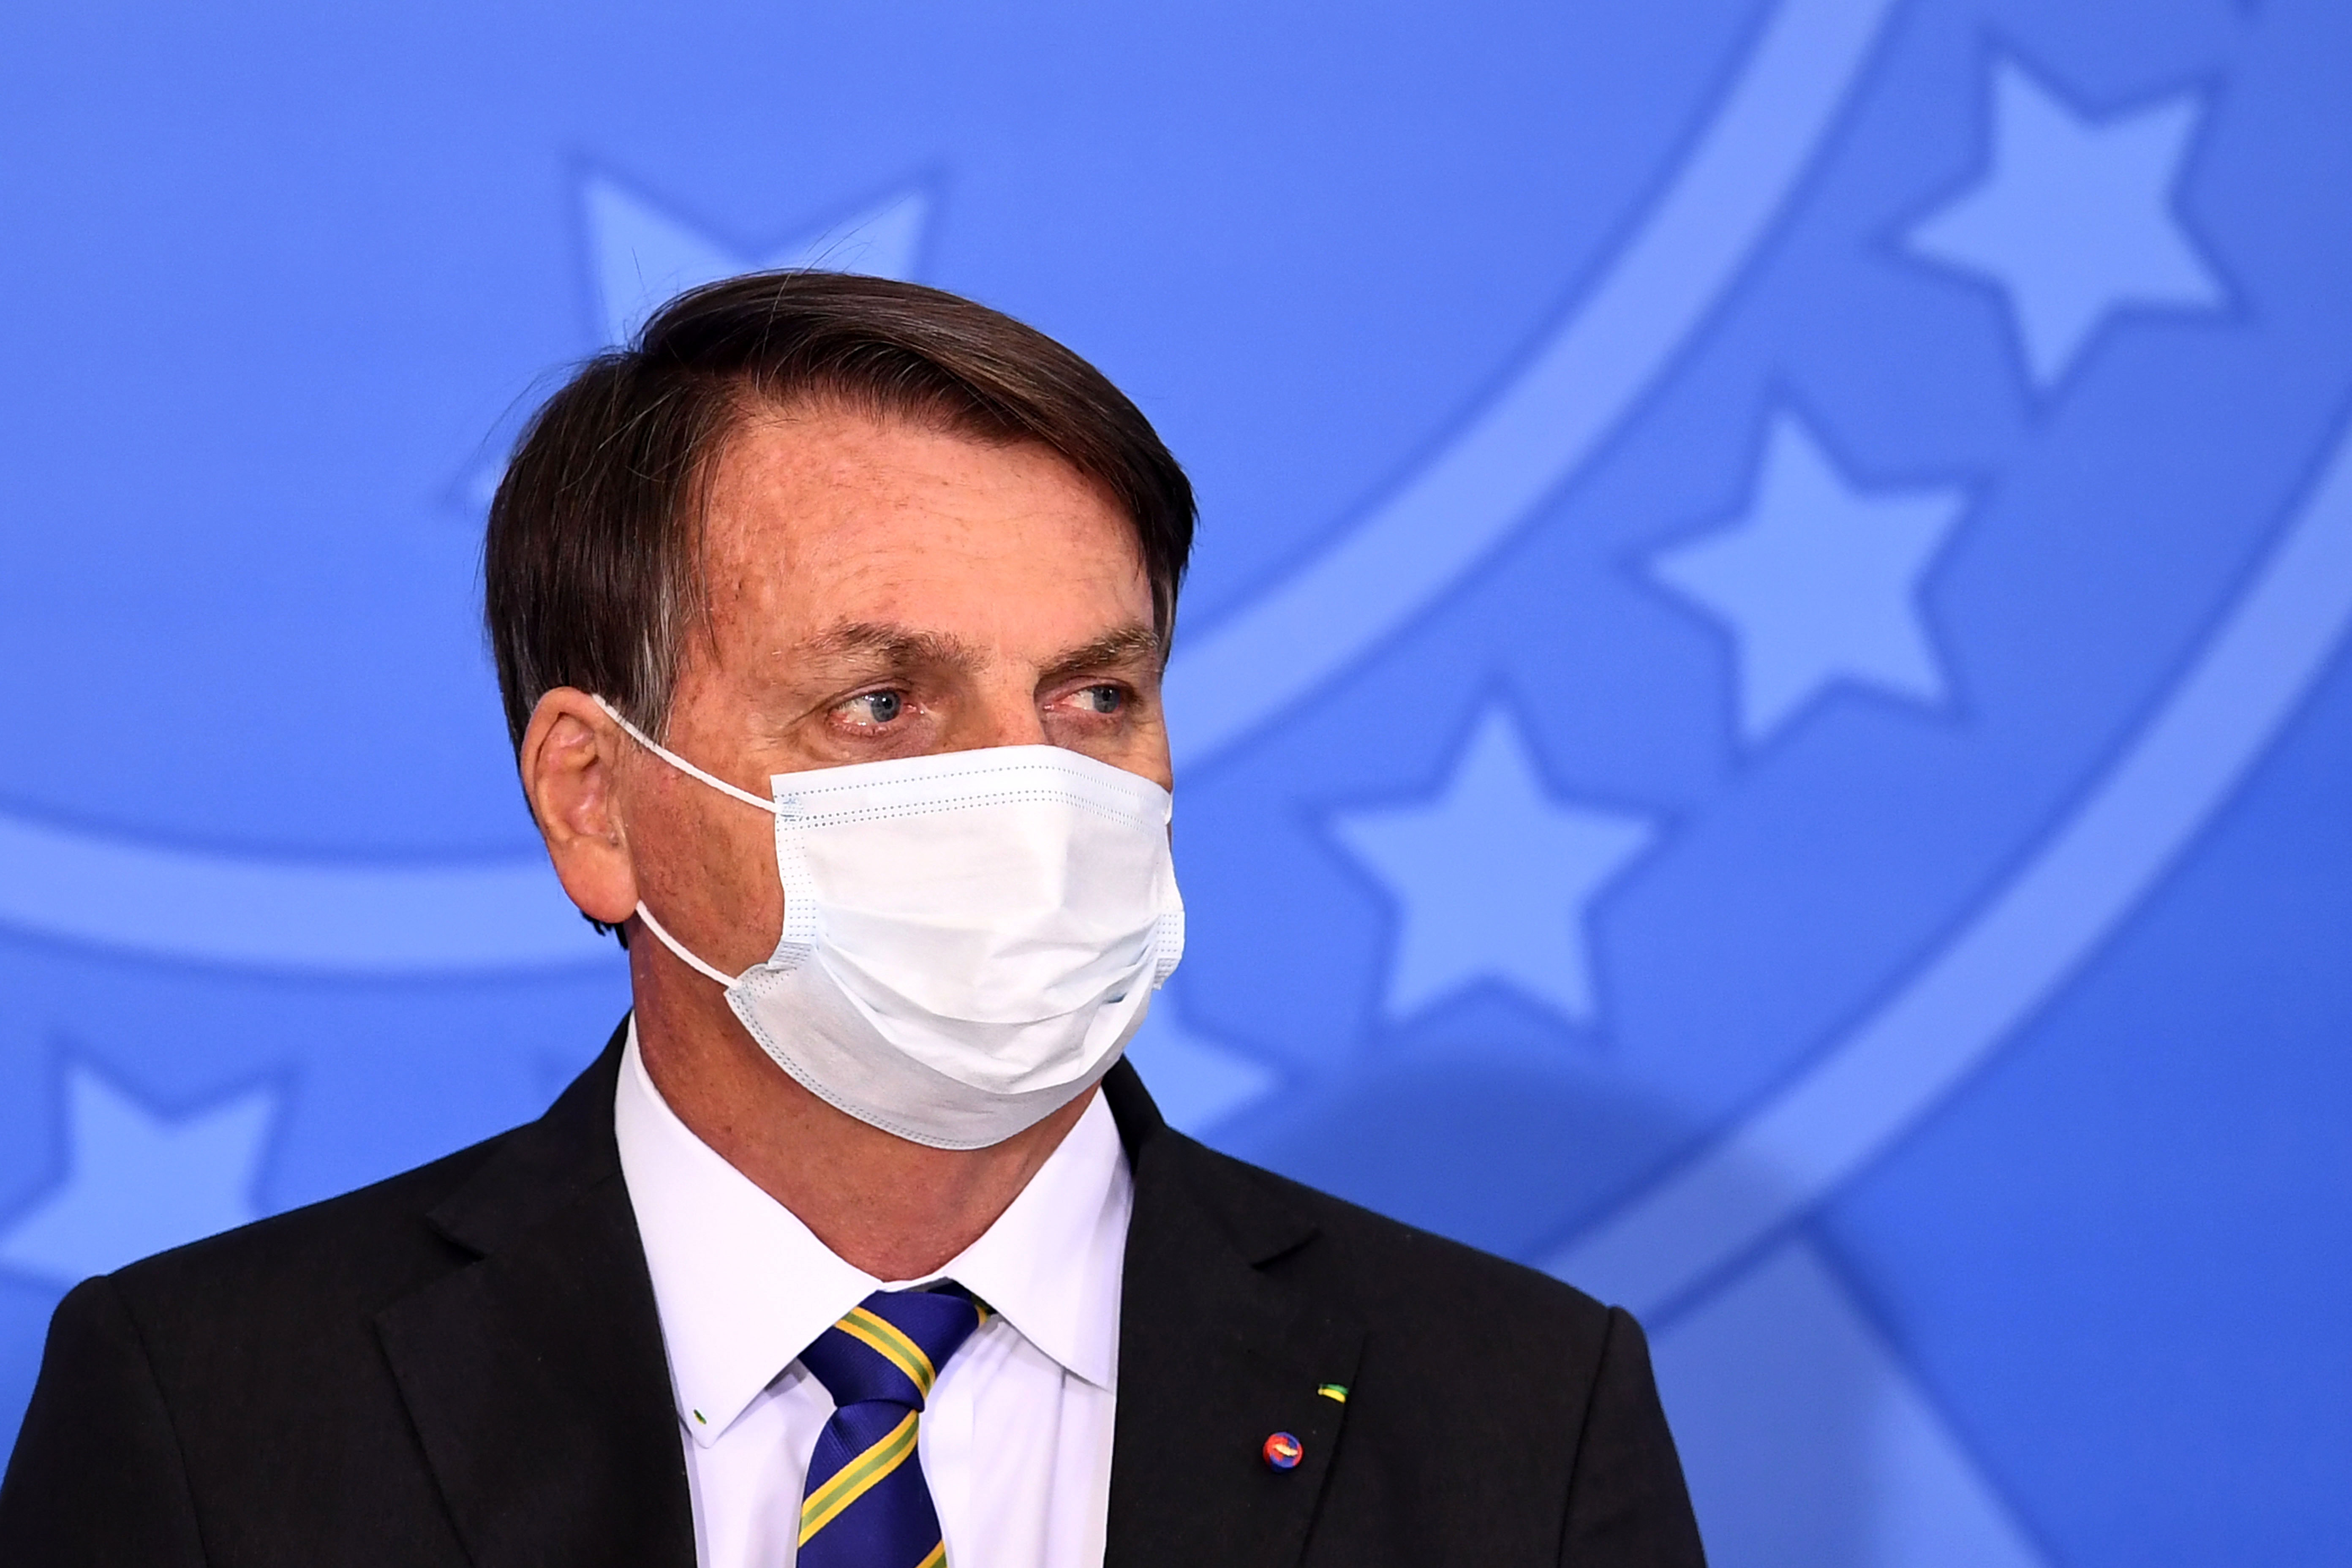 Brazil's President Jair Bolsonaro attends an event at Planalto Palace in Brasília on July 29.